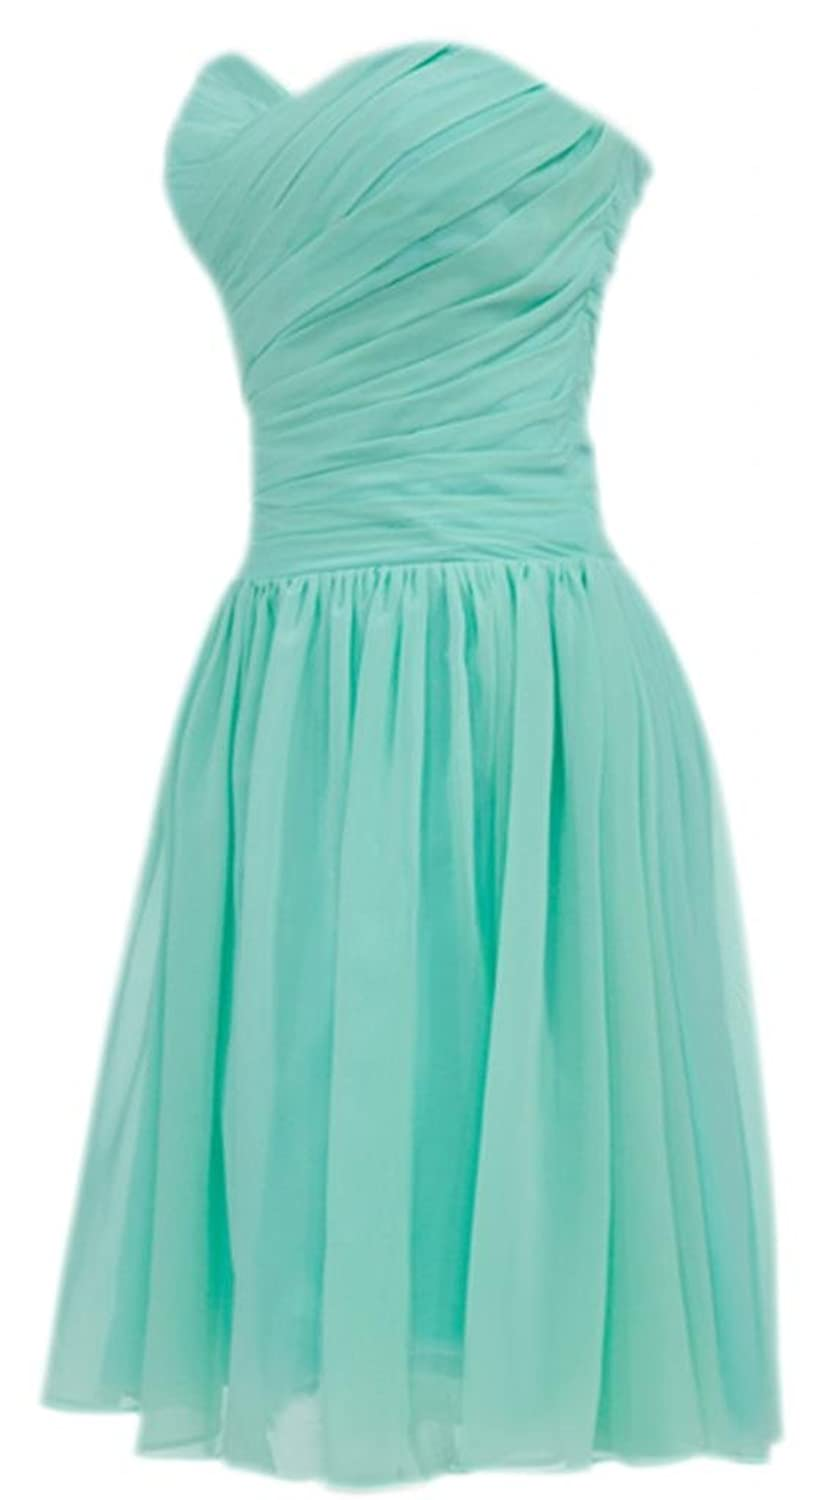 PrettyDresses Women\'s Mint Green Short Bridesmaid Prom Wedding Party ...